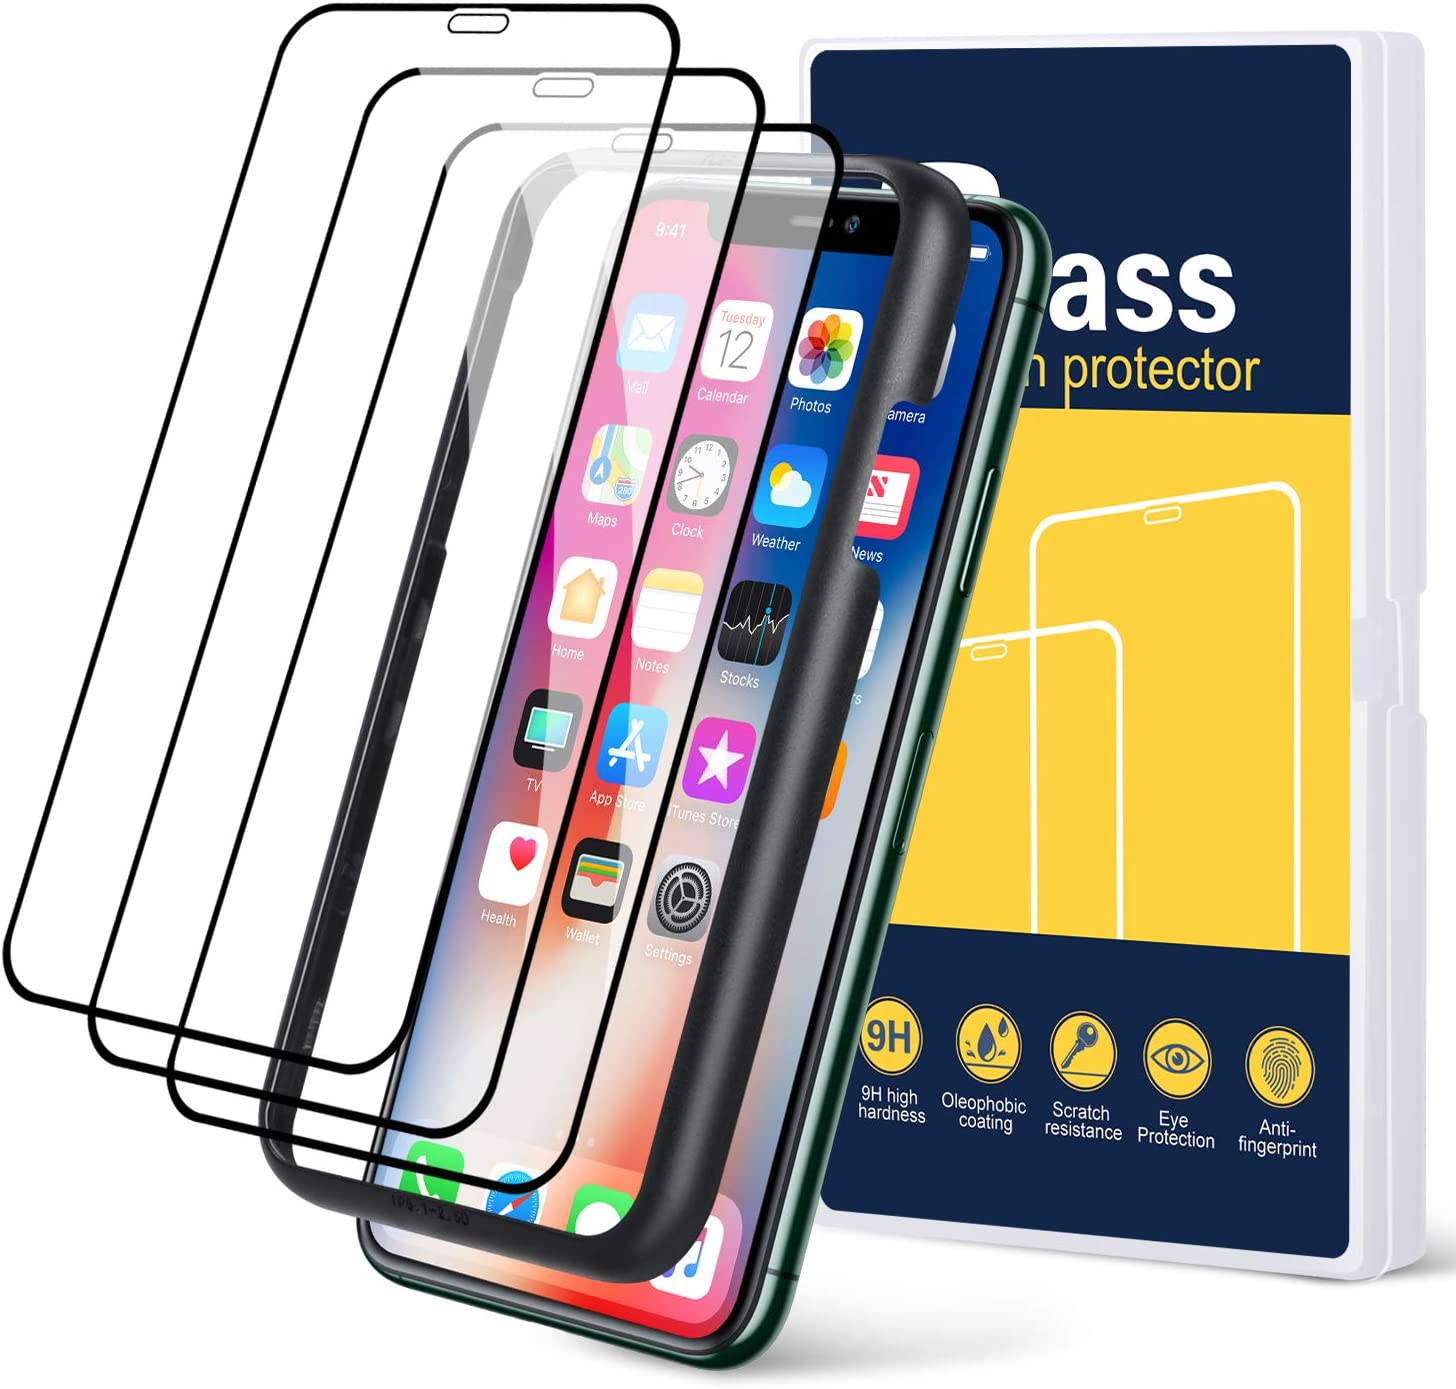 Pofesun Tempered Glass Edge to Edge Screen Protector Designed for iPhone 11/XR 6.1 Inch, 4-Pack Full Coverage Screen Protector Compatible for iPhone 11 (2019)/XR (2018) [Guidance Frame Include]-Black